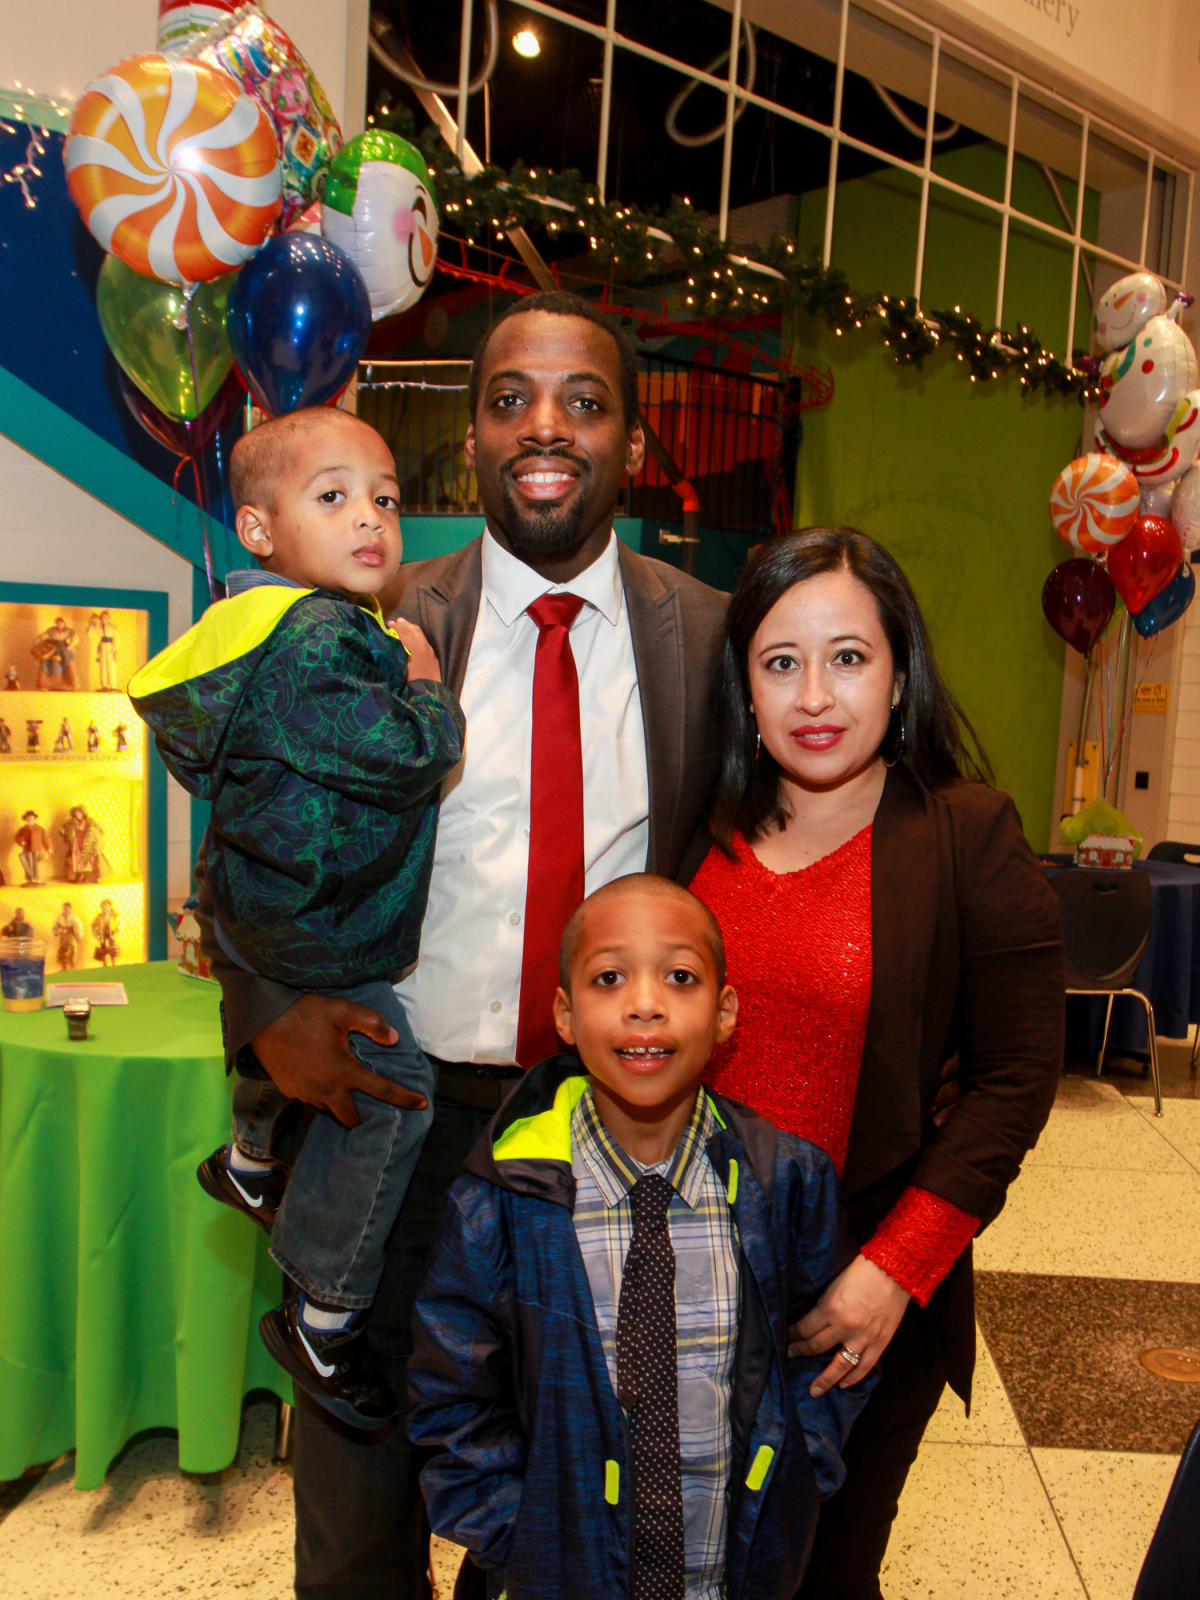 Children's Museum holiday party, Hakim Johnson, Araceli Johnson and children